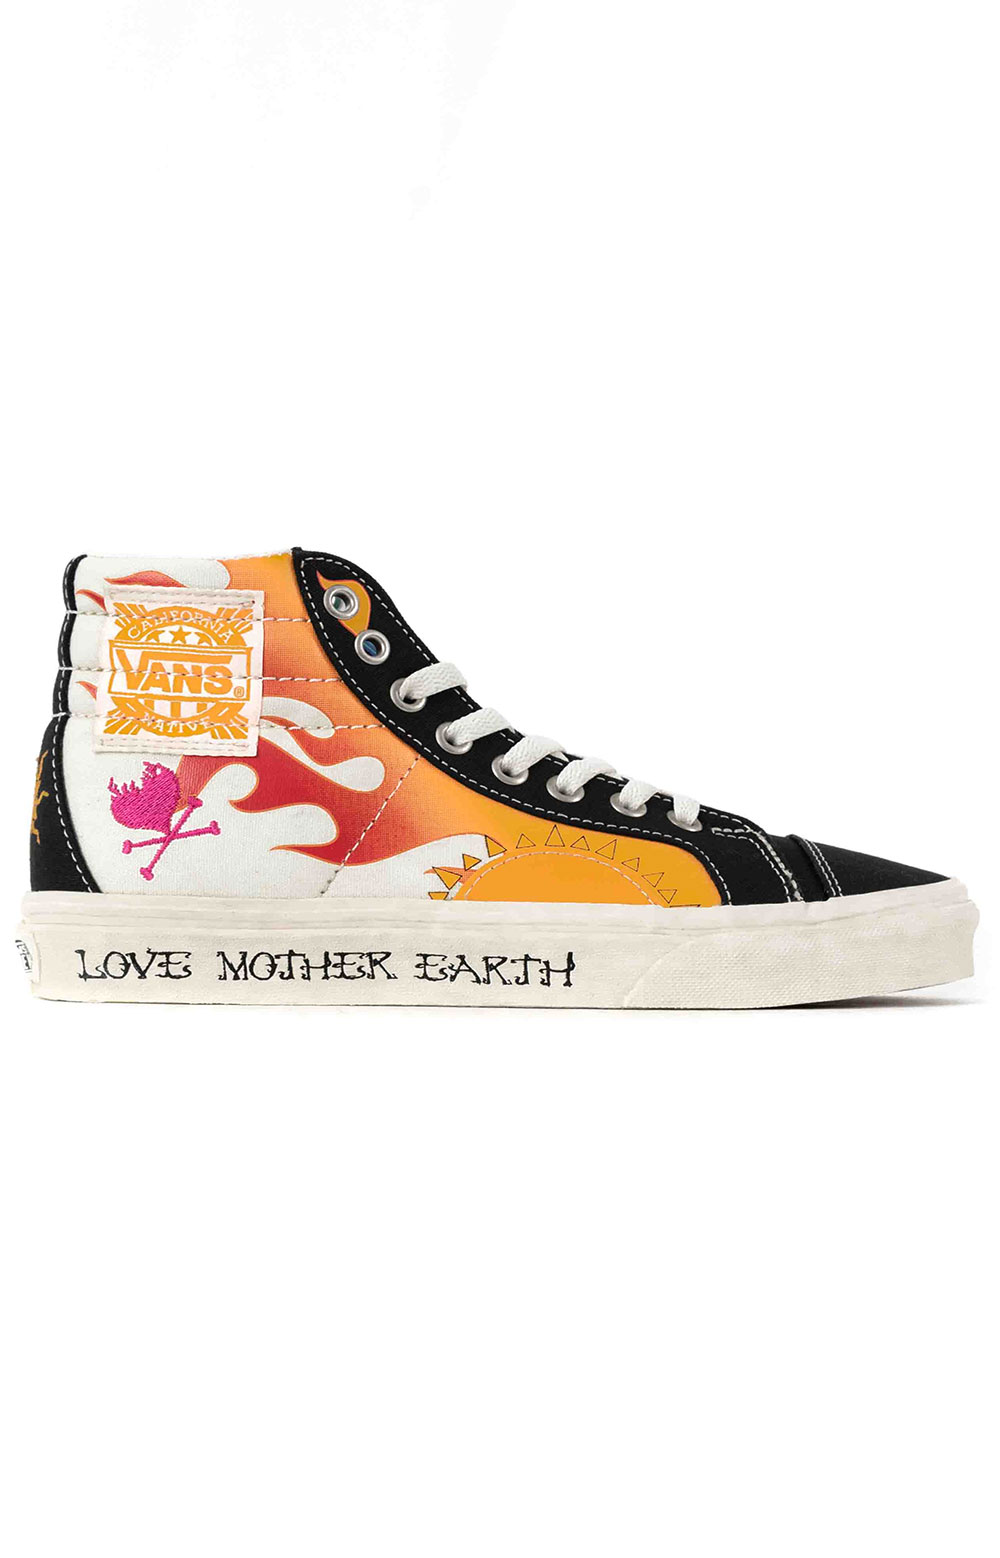 (JFIWZ2) Mother Earth Style 238 Shoes - Elements Marshmallow